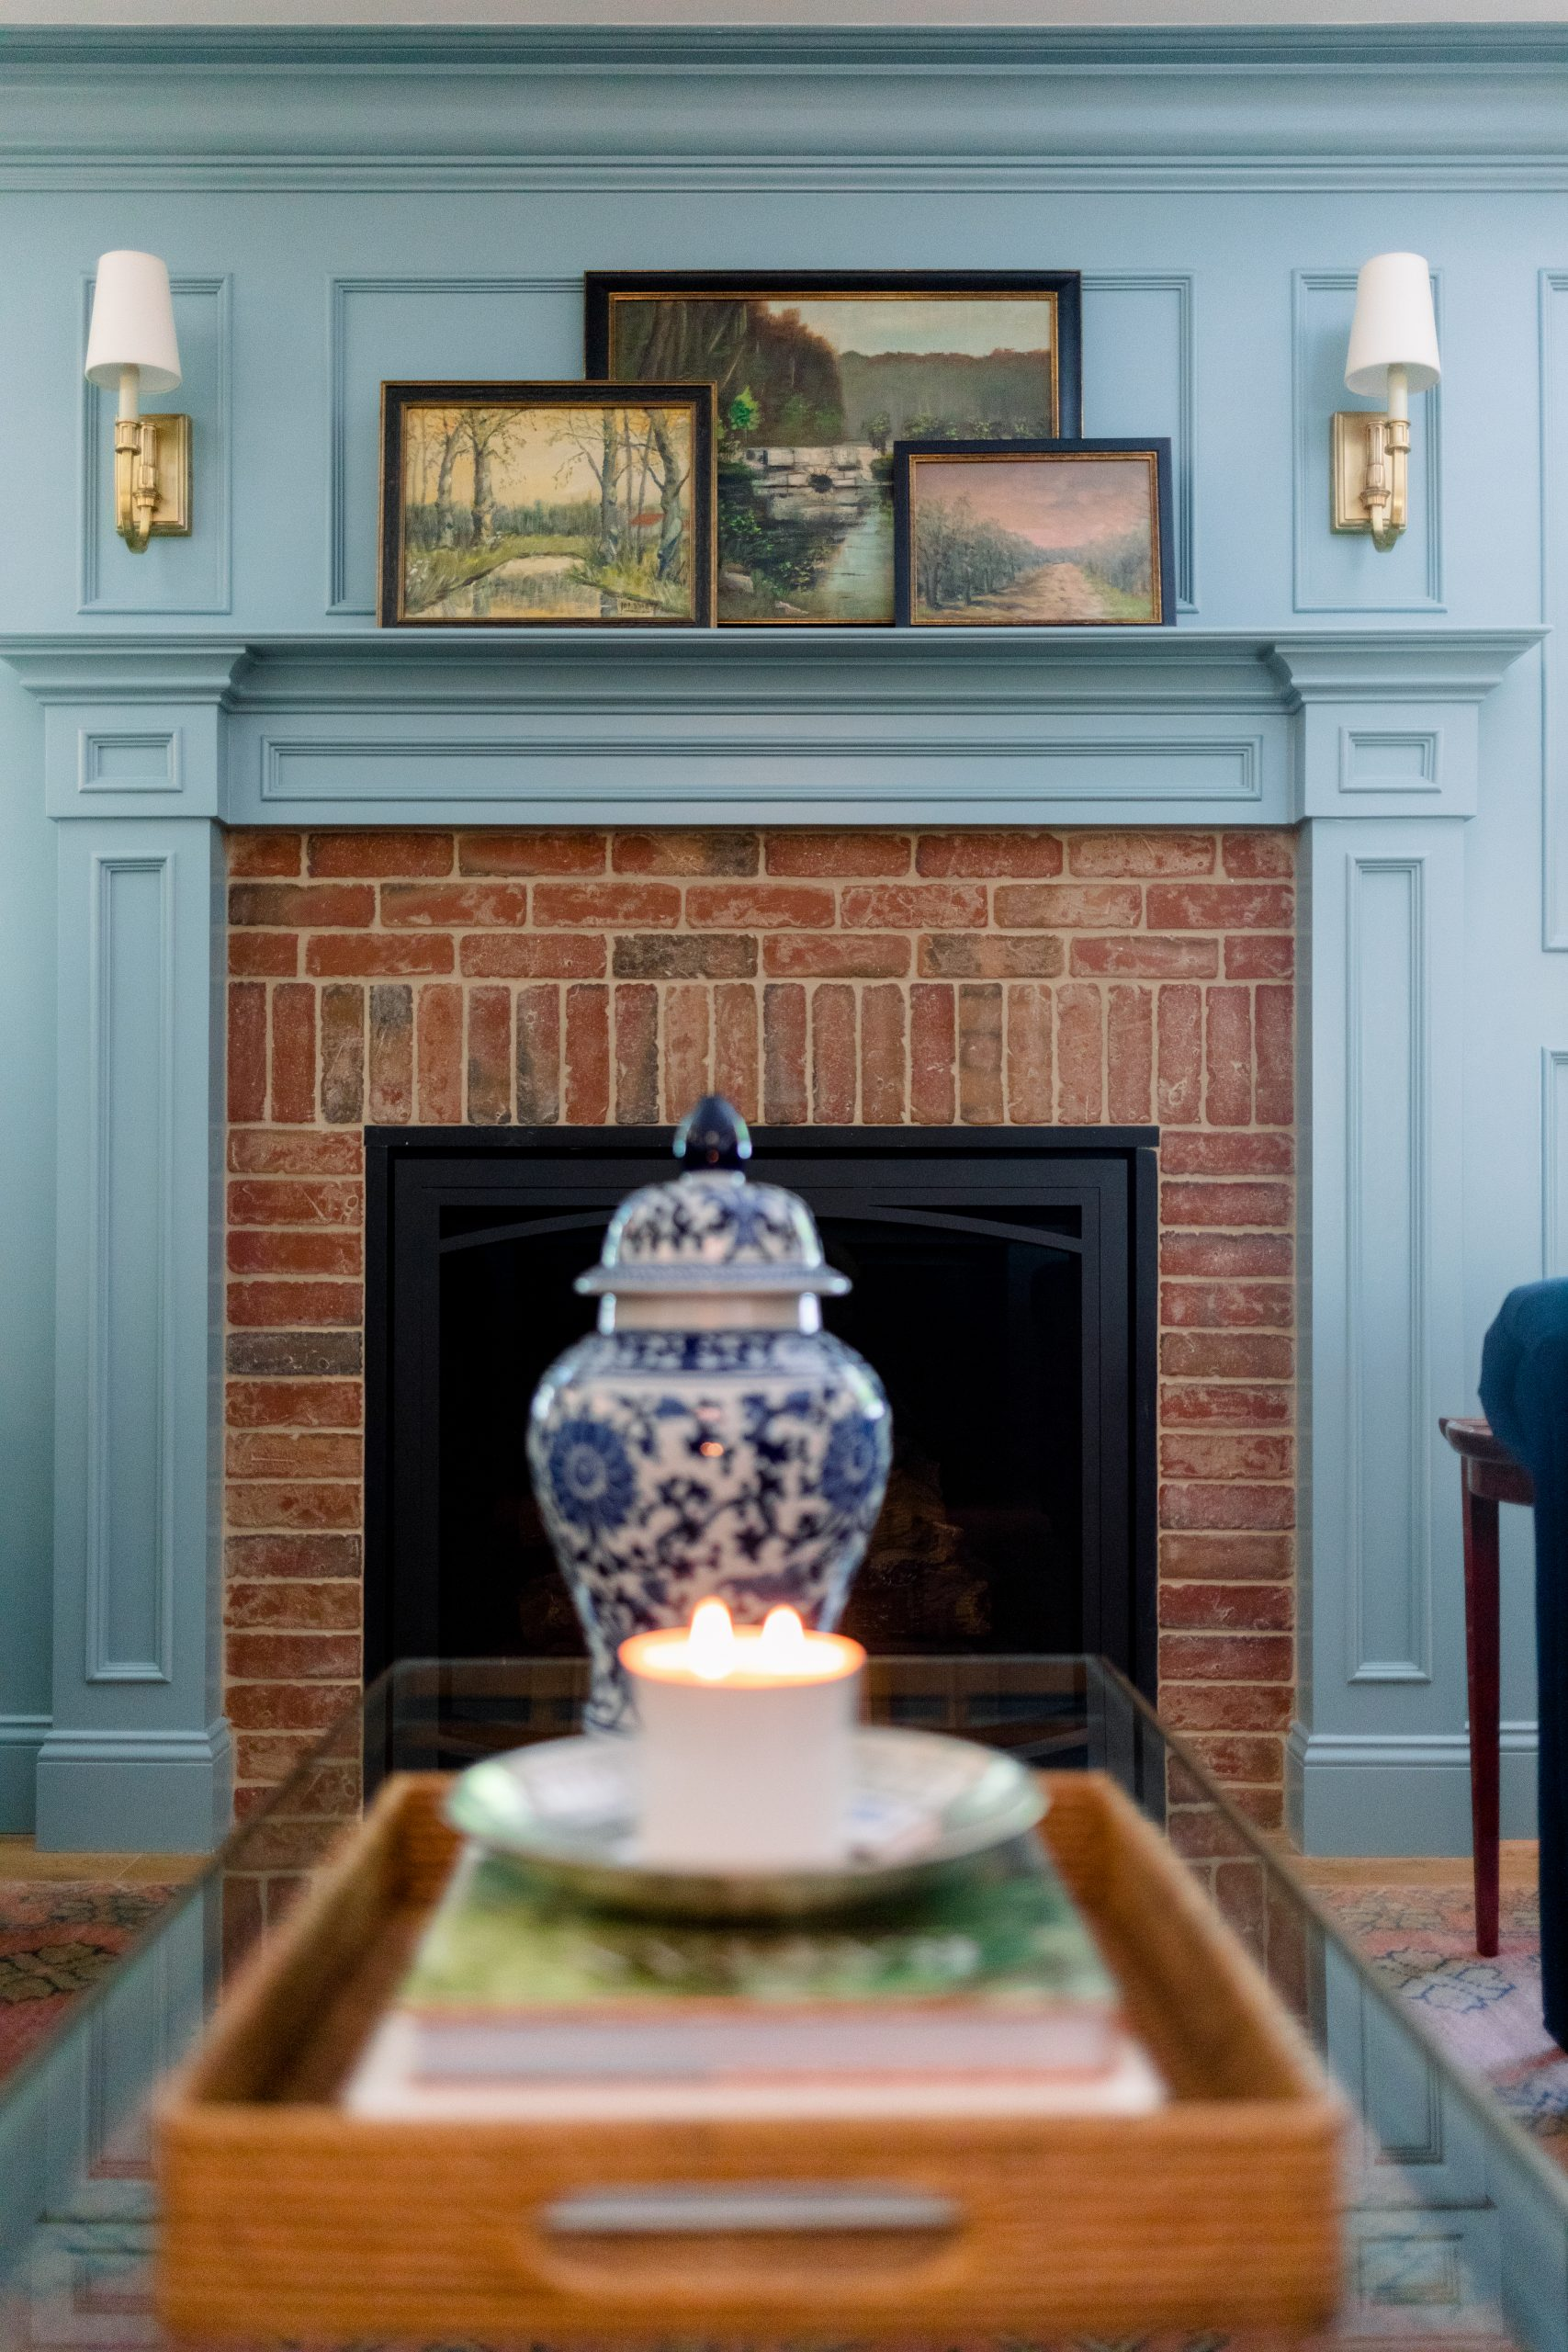 Home Library fireplace and coffee table